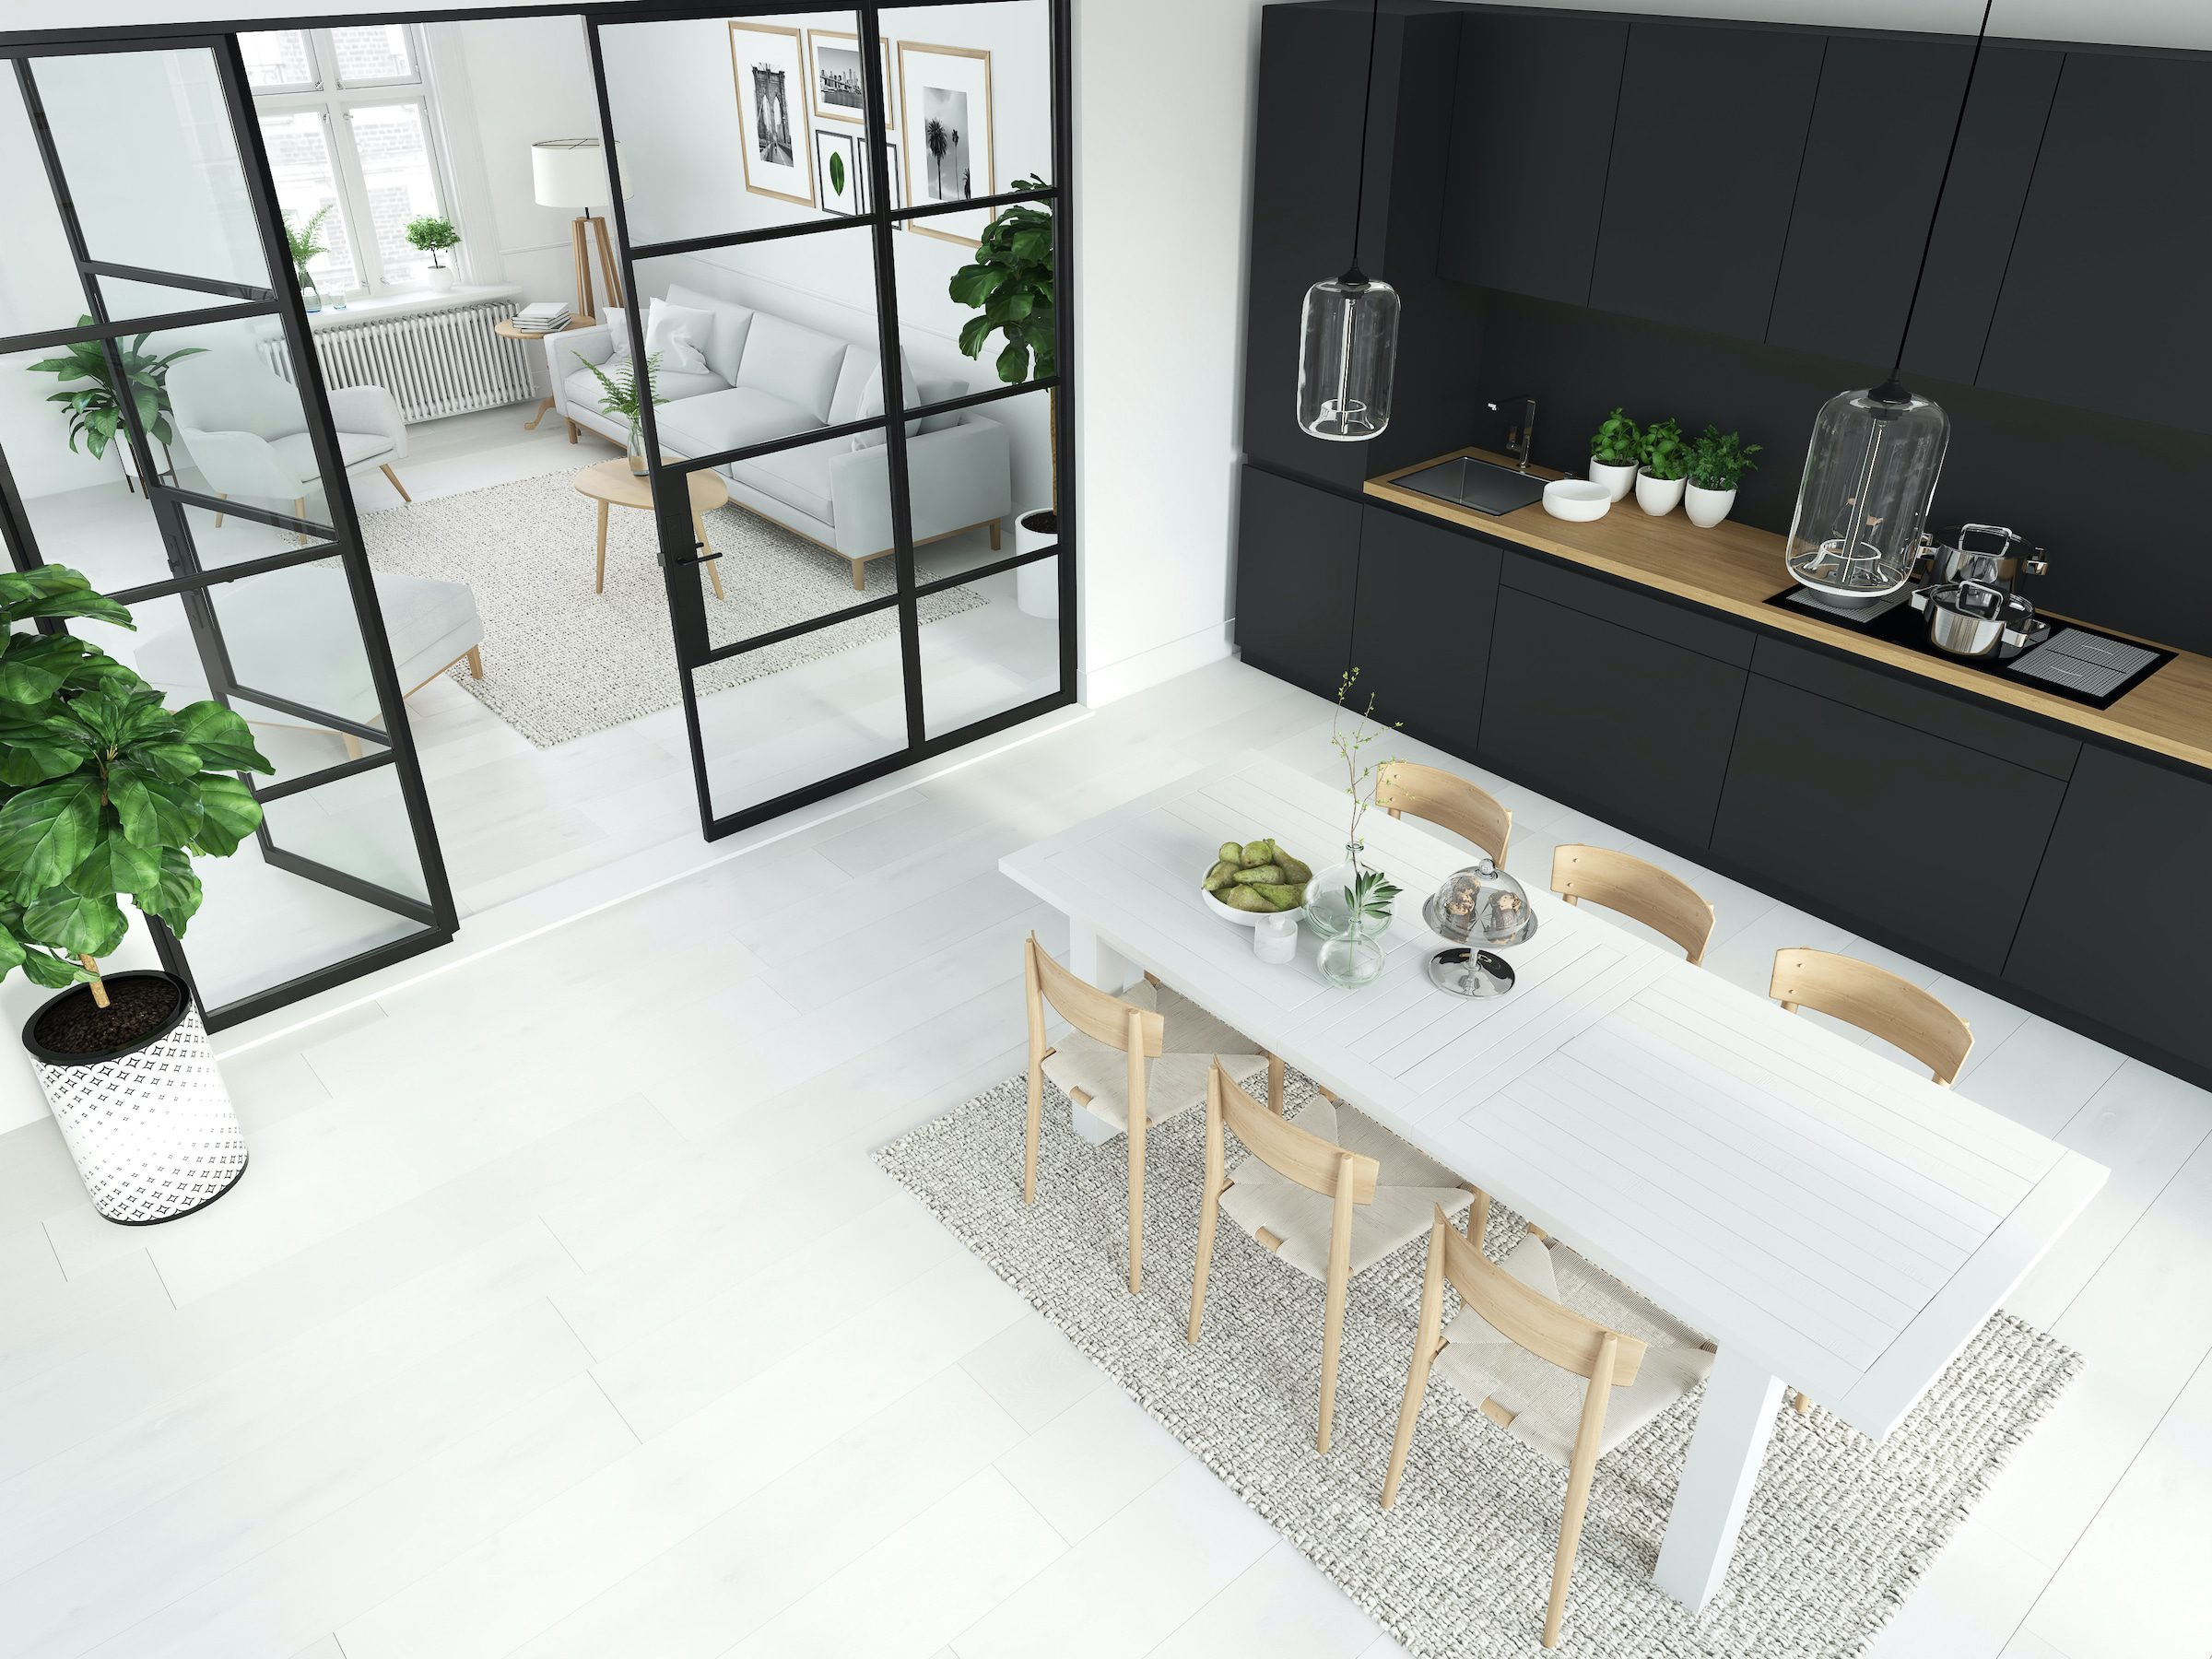 alitherm interior steel look doors and screens in black crittall style